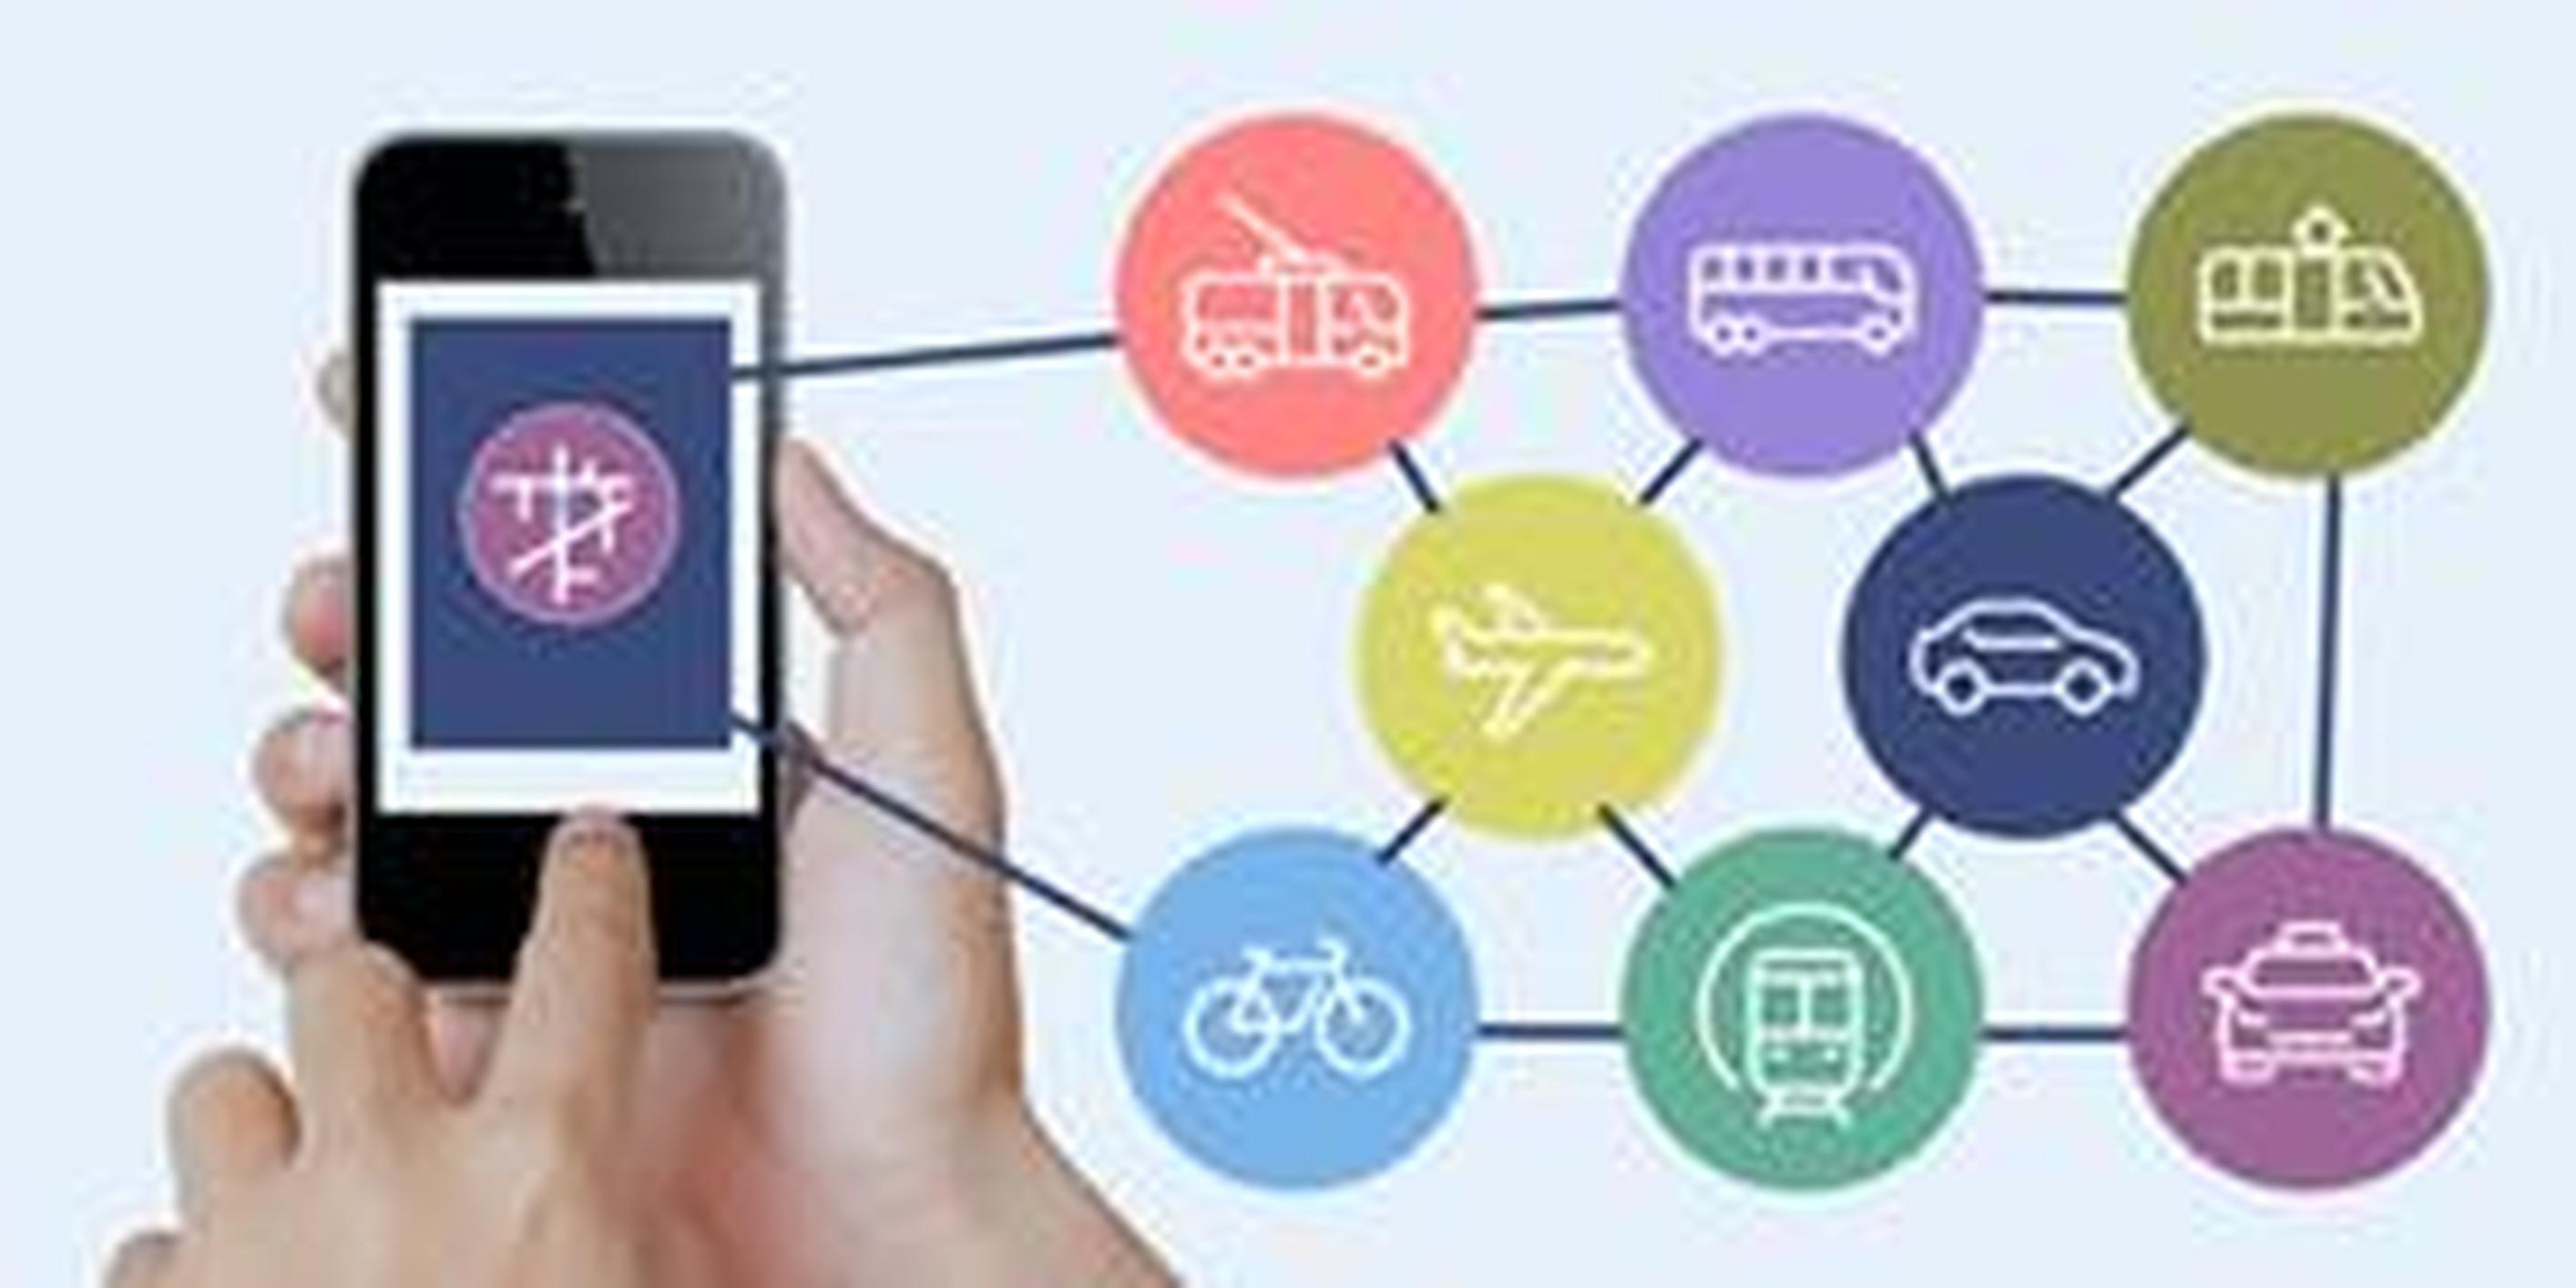 The emerging model of MaaS sees multiple modes of transport being brought together under a single app